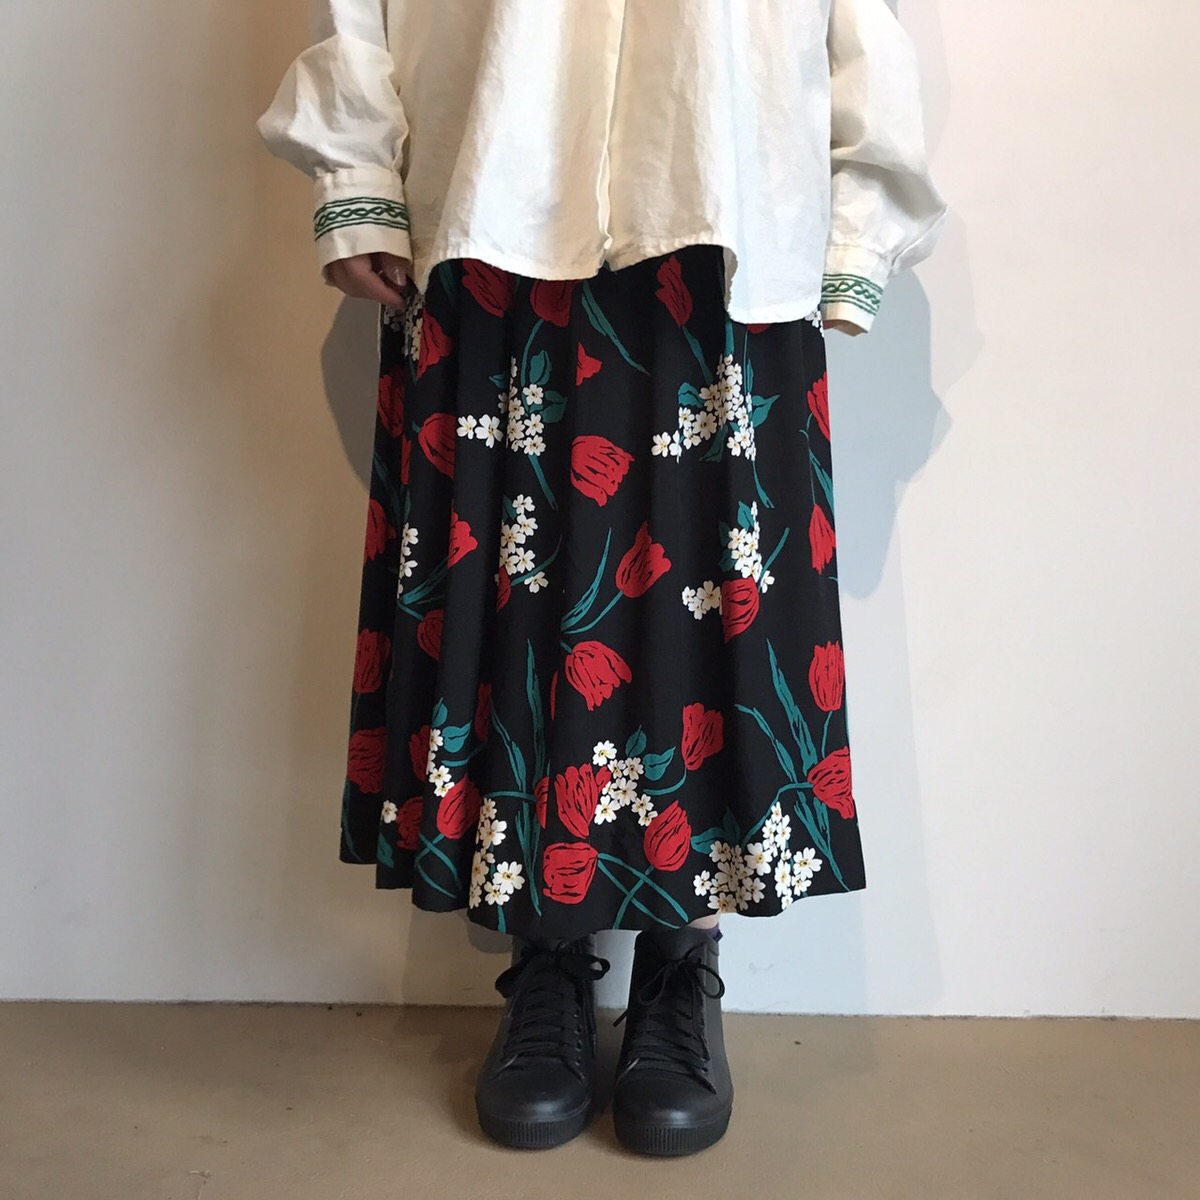 80s vintage skirt made in USA